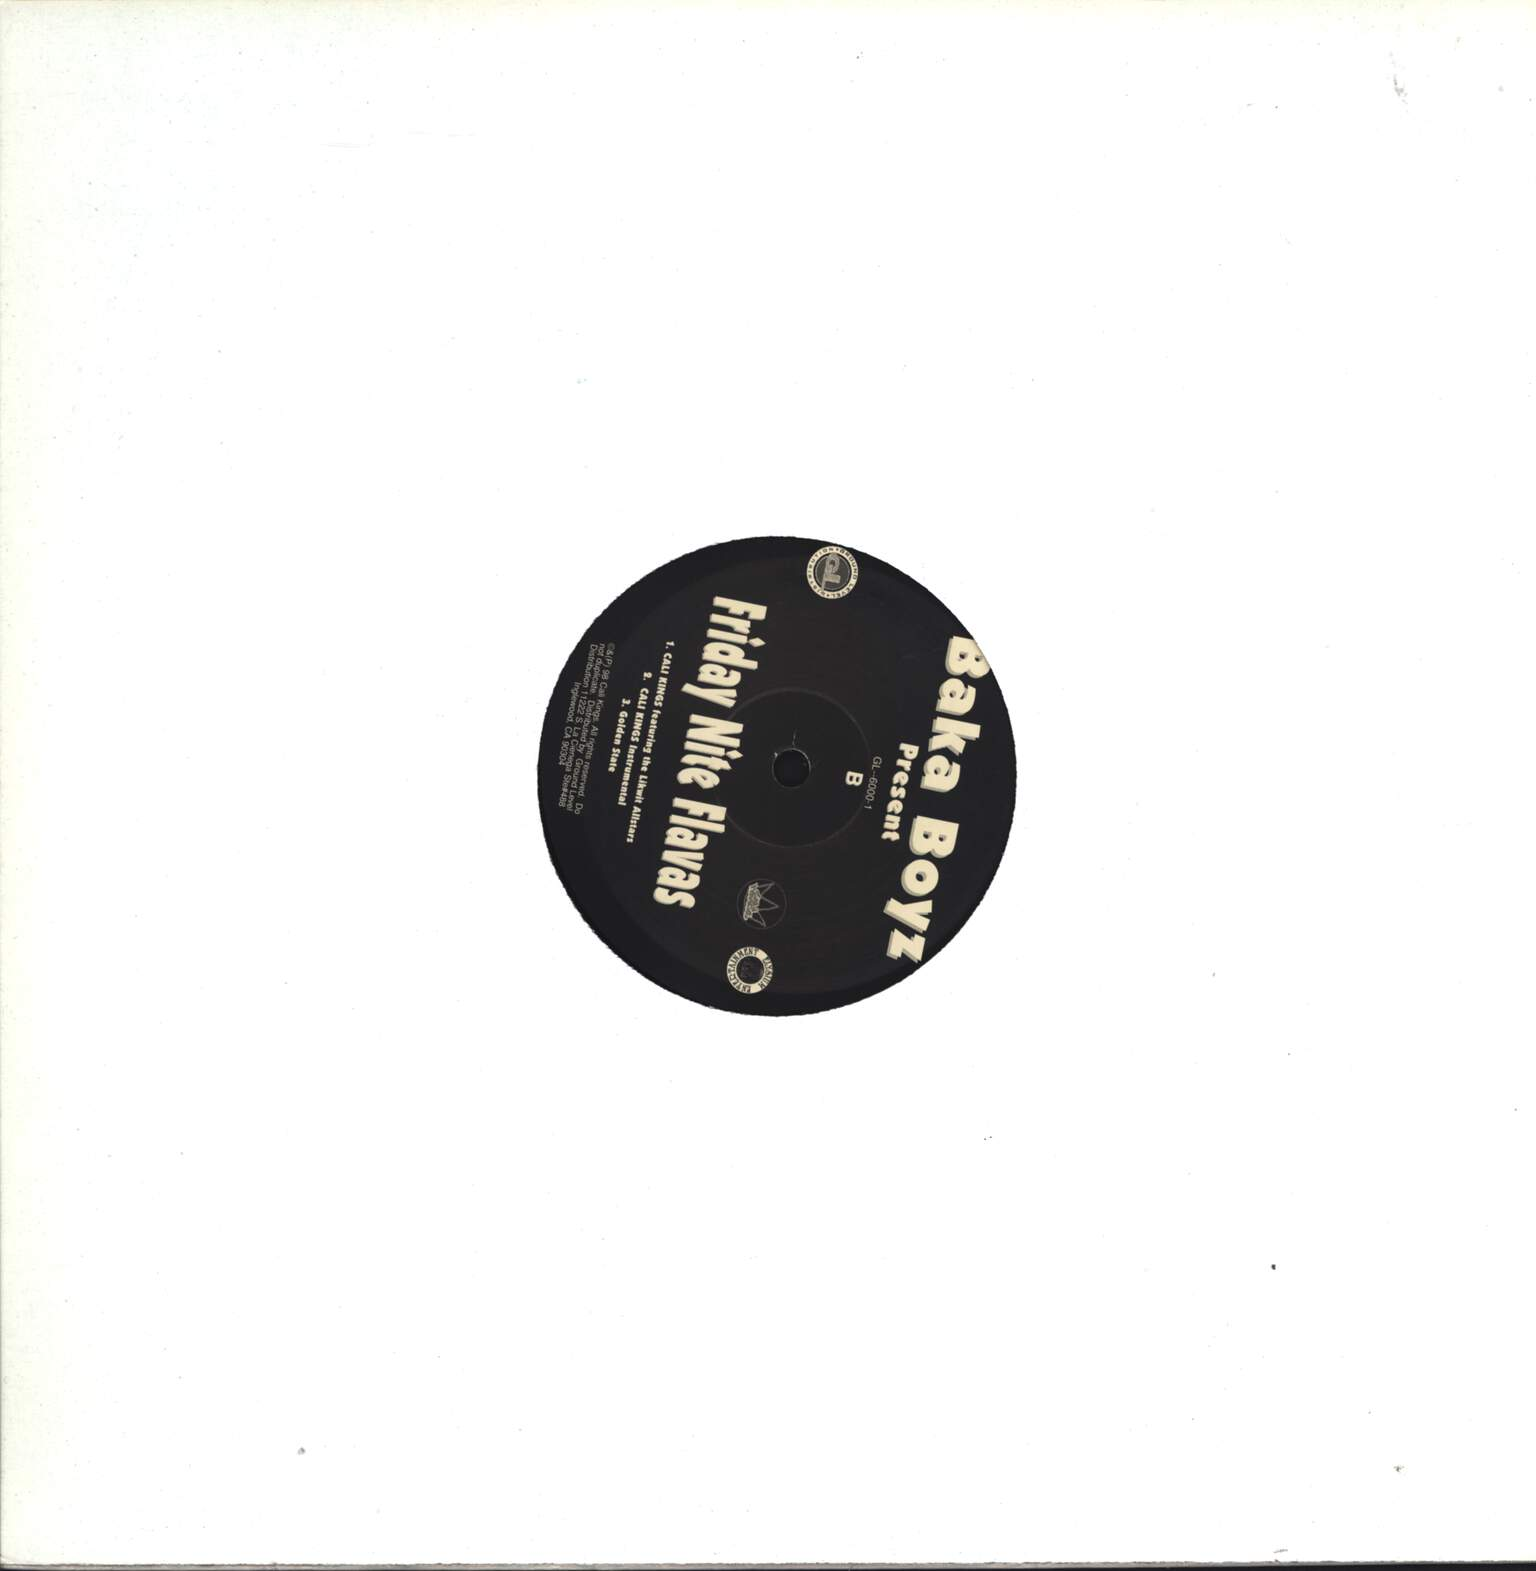 "Baka Boyz: Friday Nite Flavas, 12"" Maxi Single (Vinyl)"